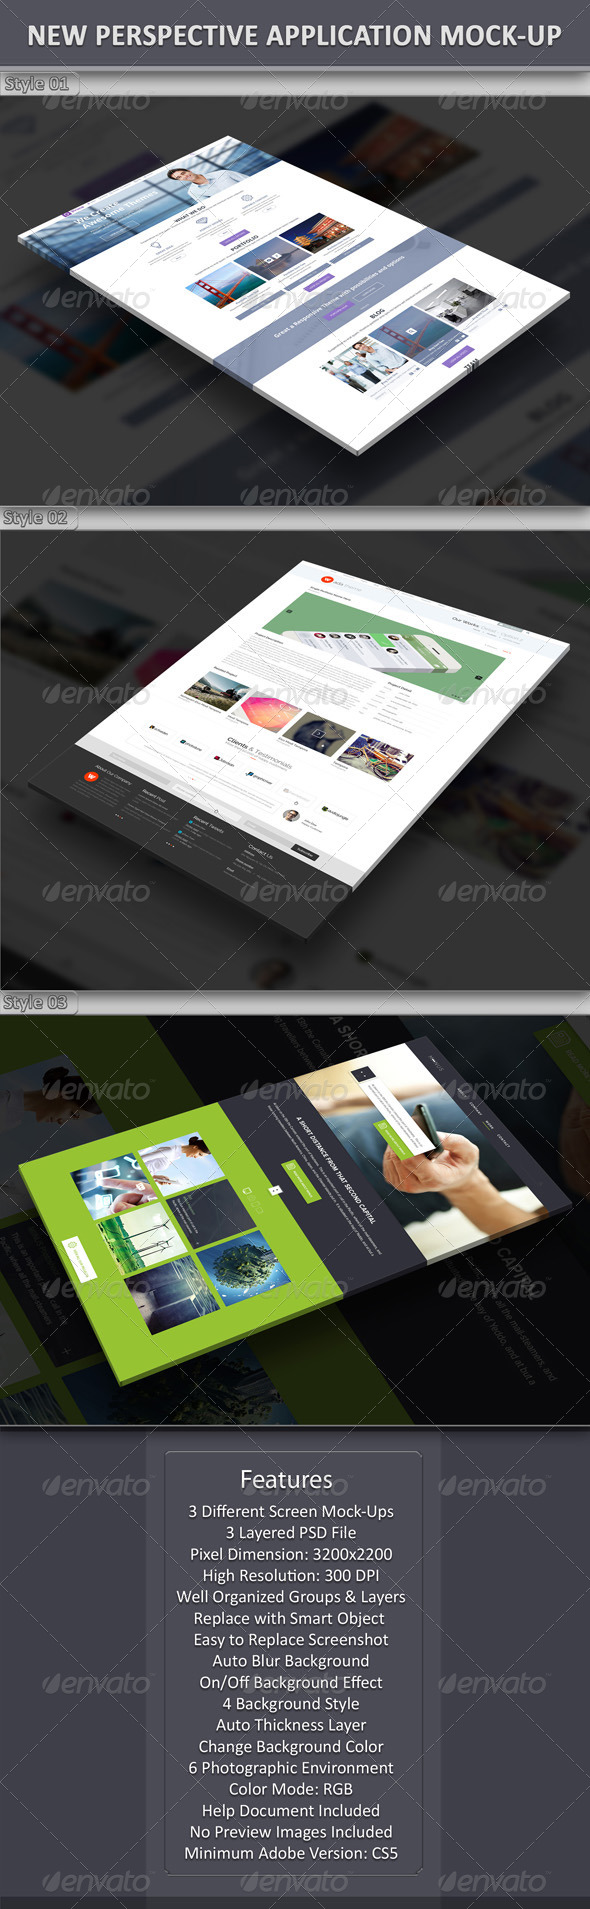 New Perspective Application Mock-Up - Website Displays